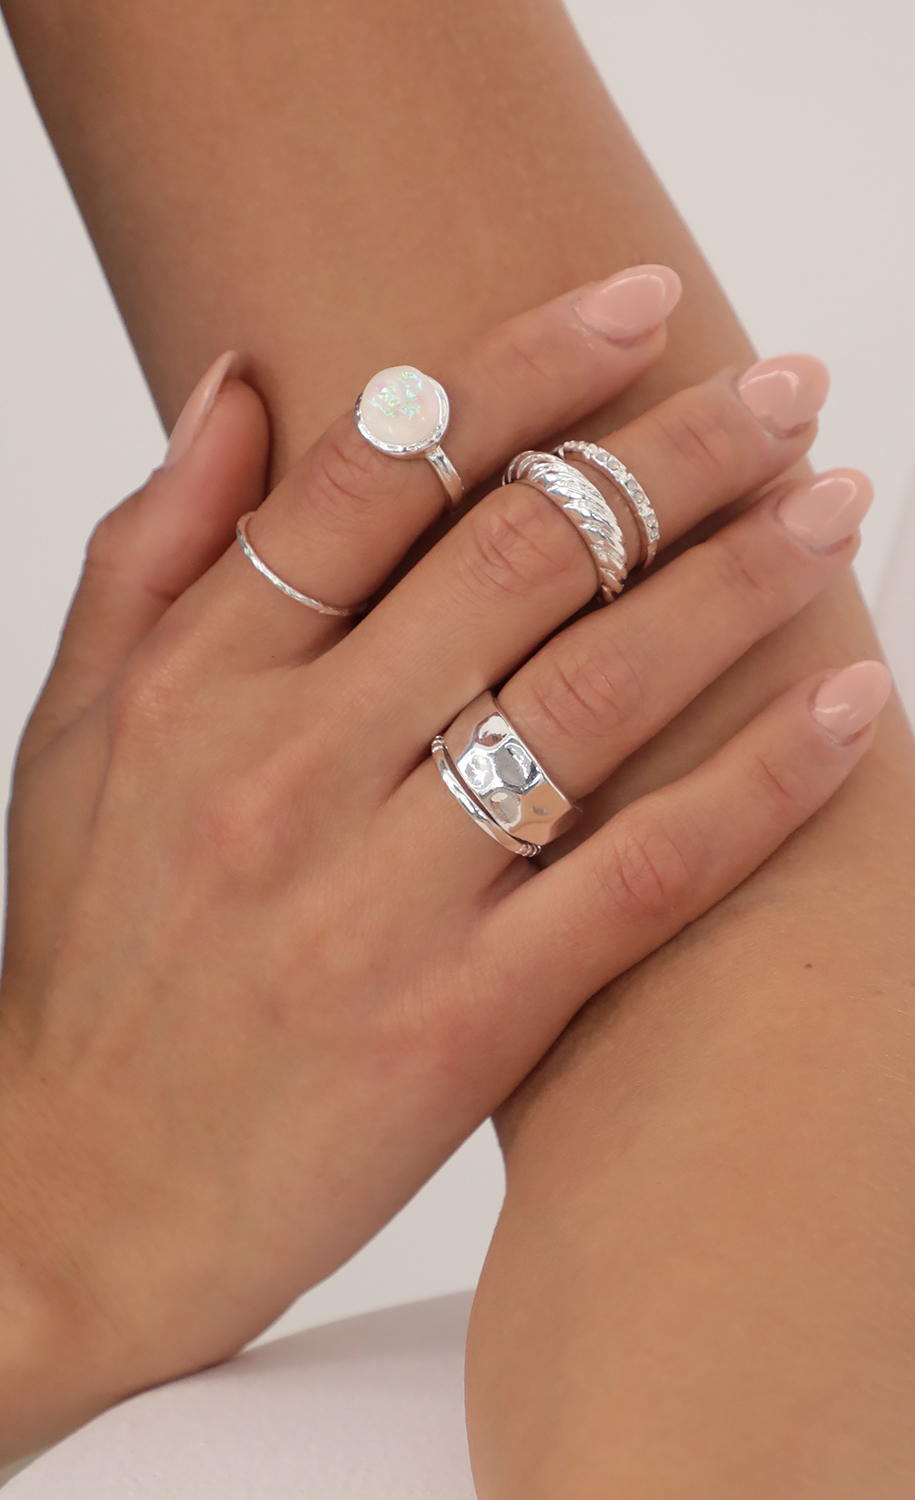 5 Piece Trendy Ring Set in Silver